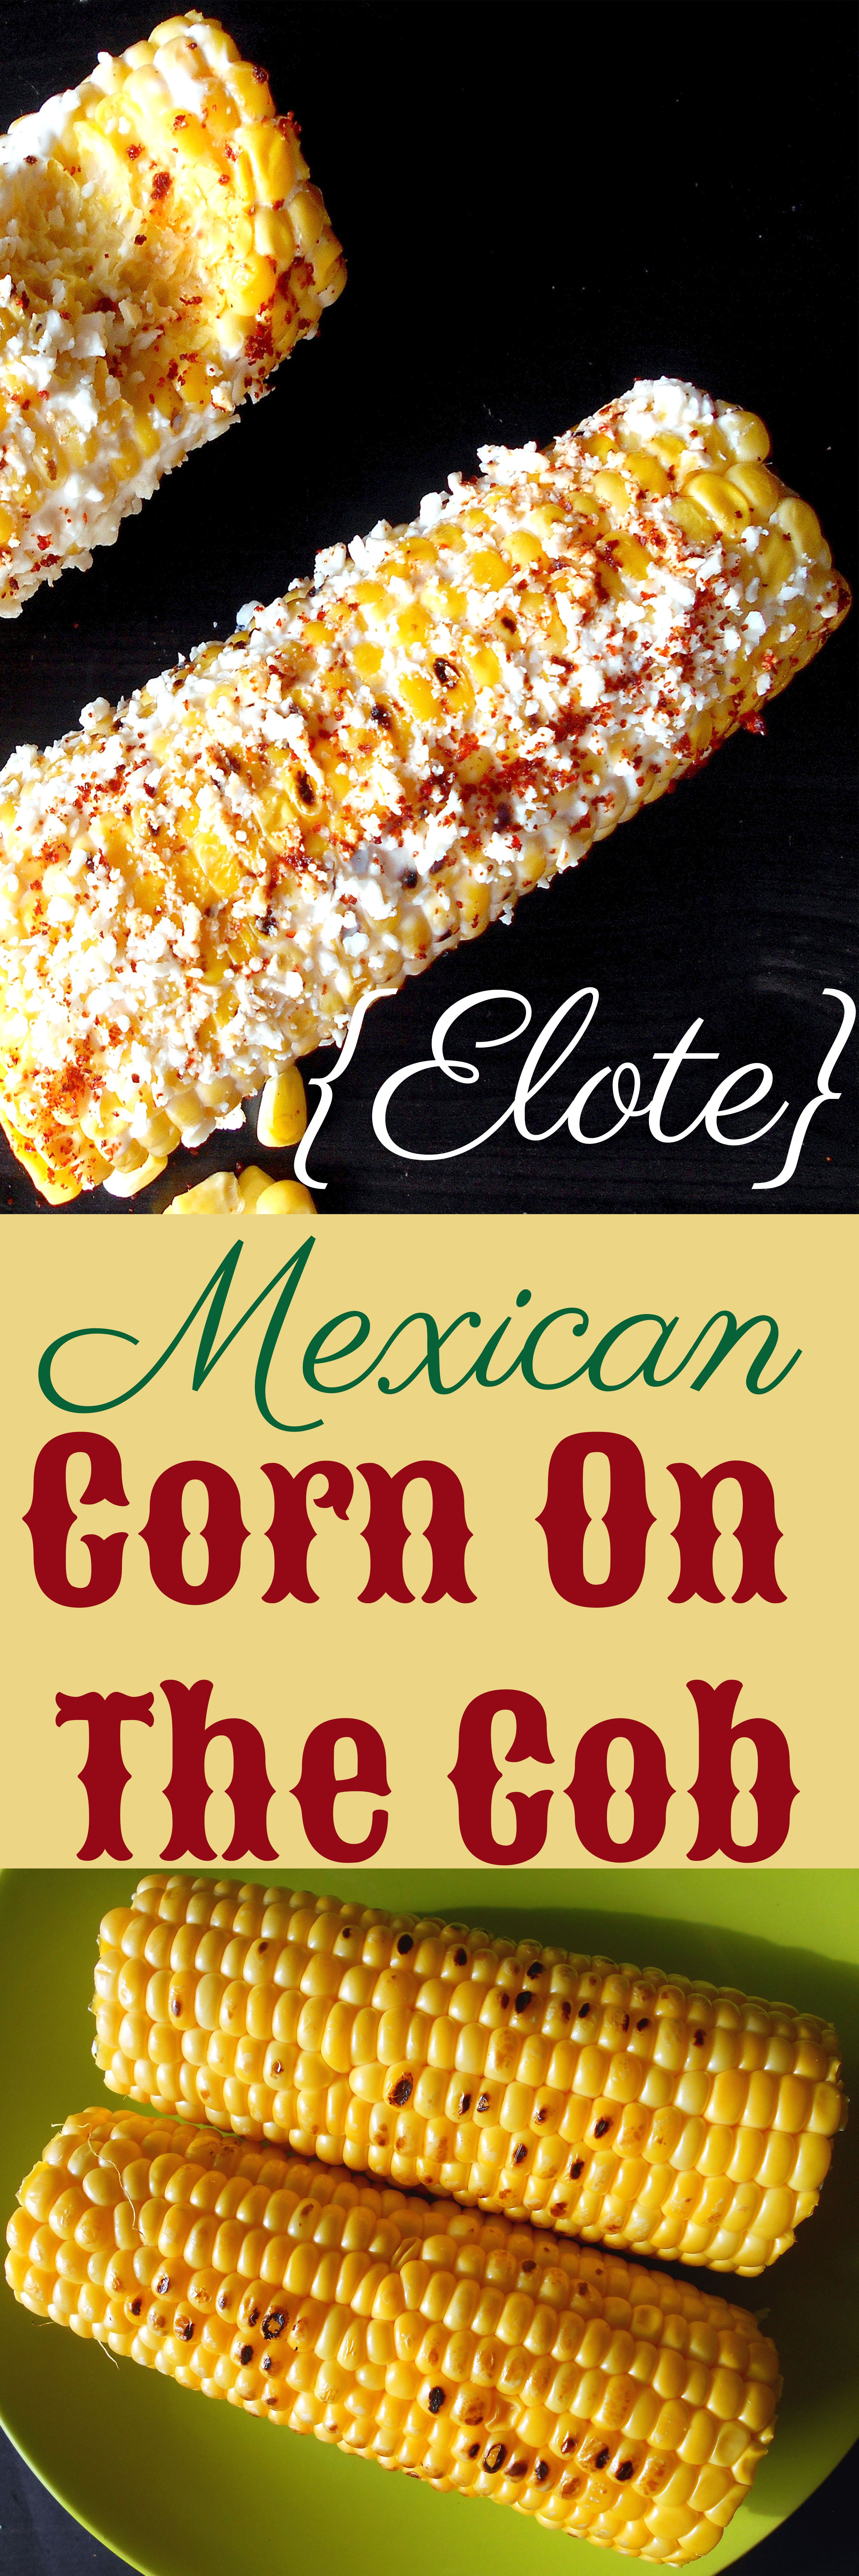 Mexican Corn on the Cob with Cotija cheese, lime and red pepper